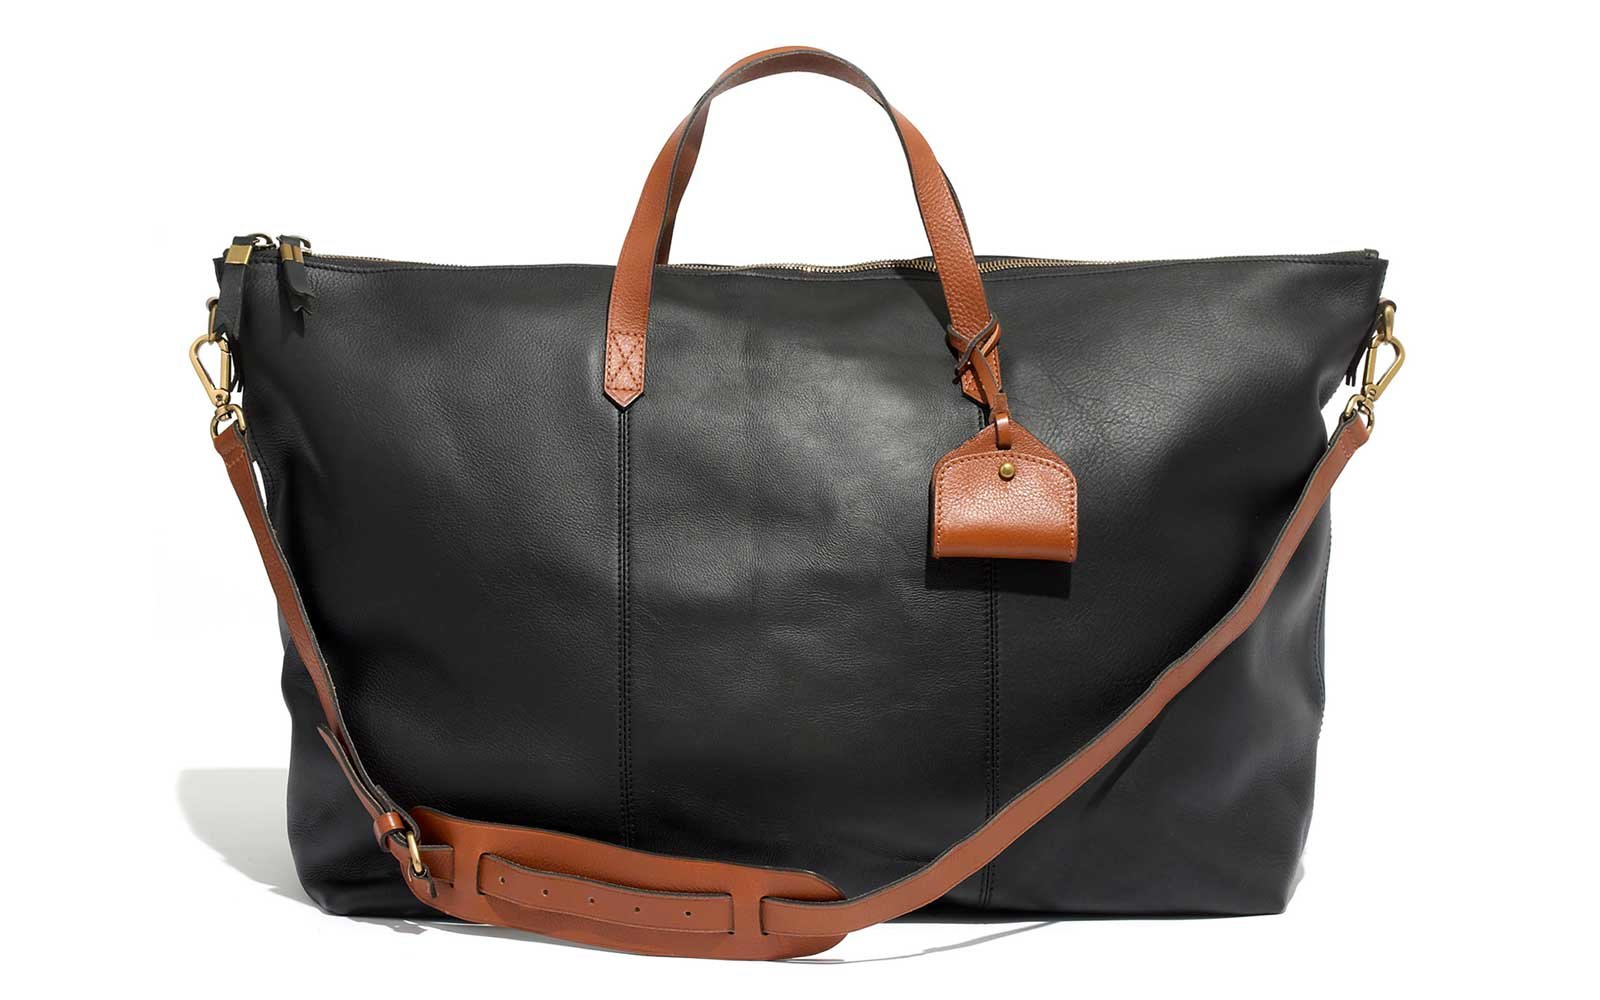 Madewell Leather Duffel for Travel d26bee6571bfa